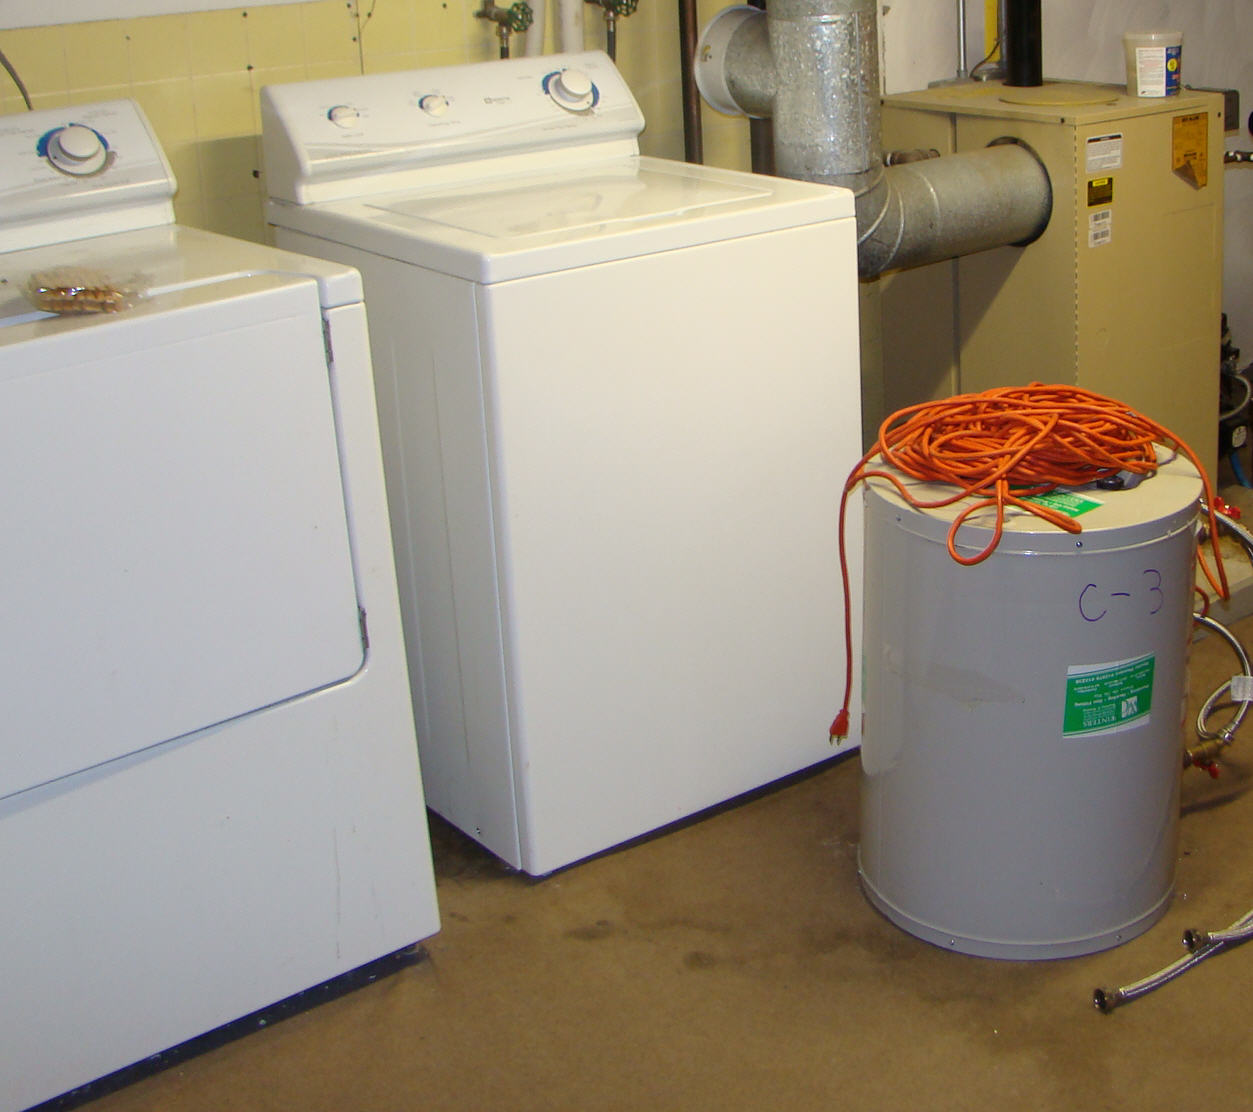 Dryer Repair Help, Troubleshooting, and Parts